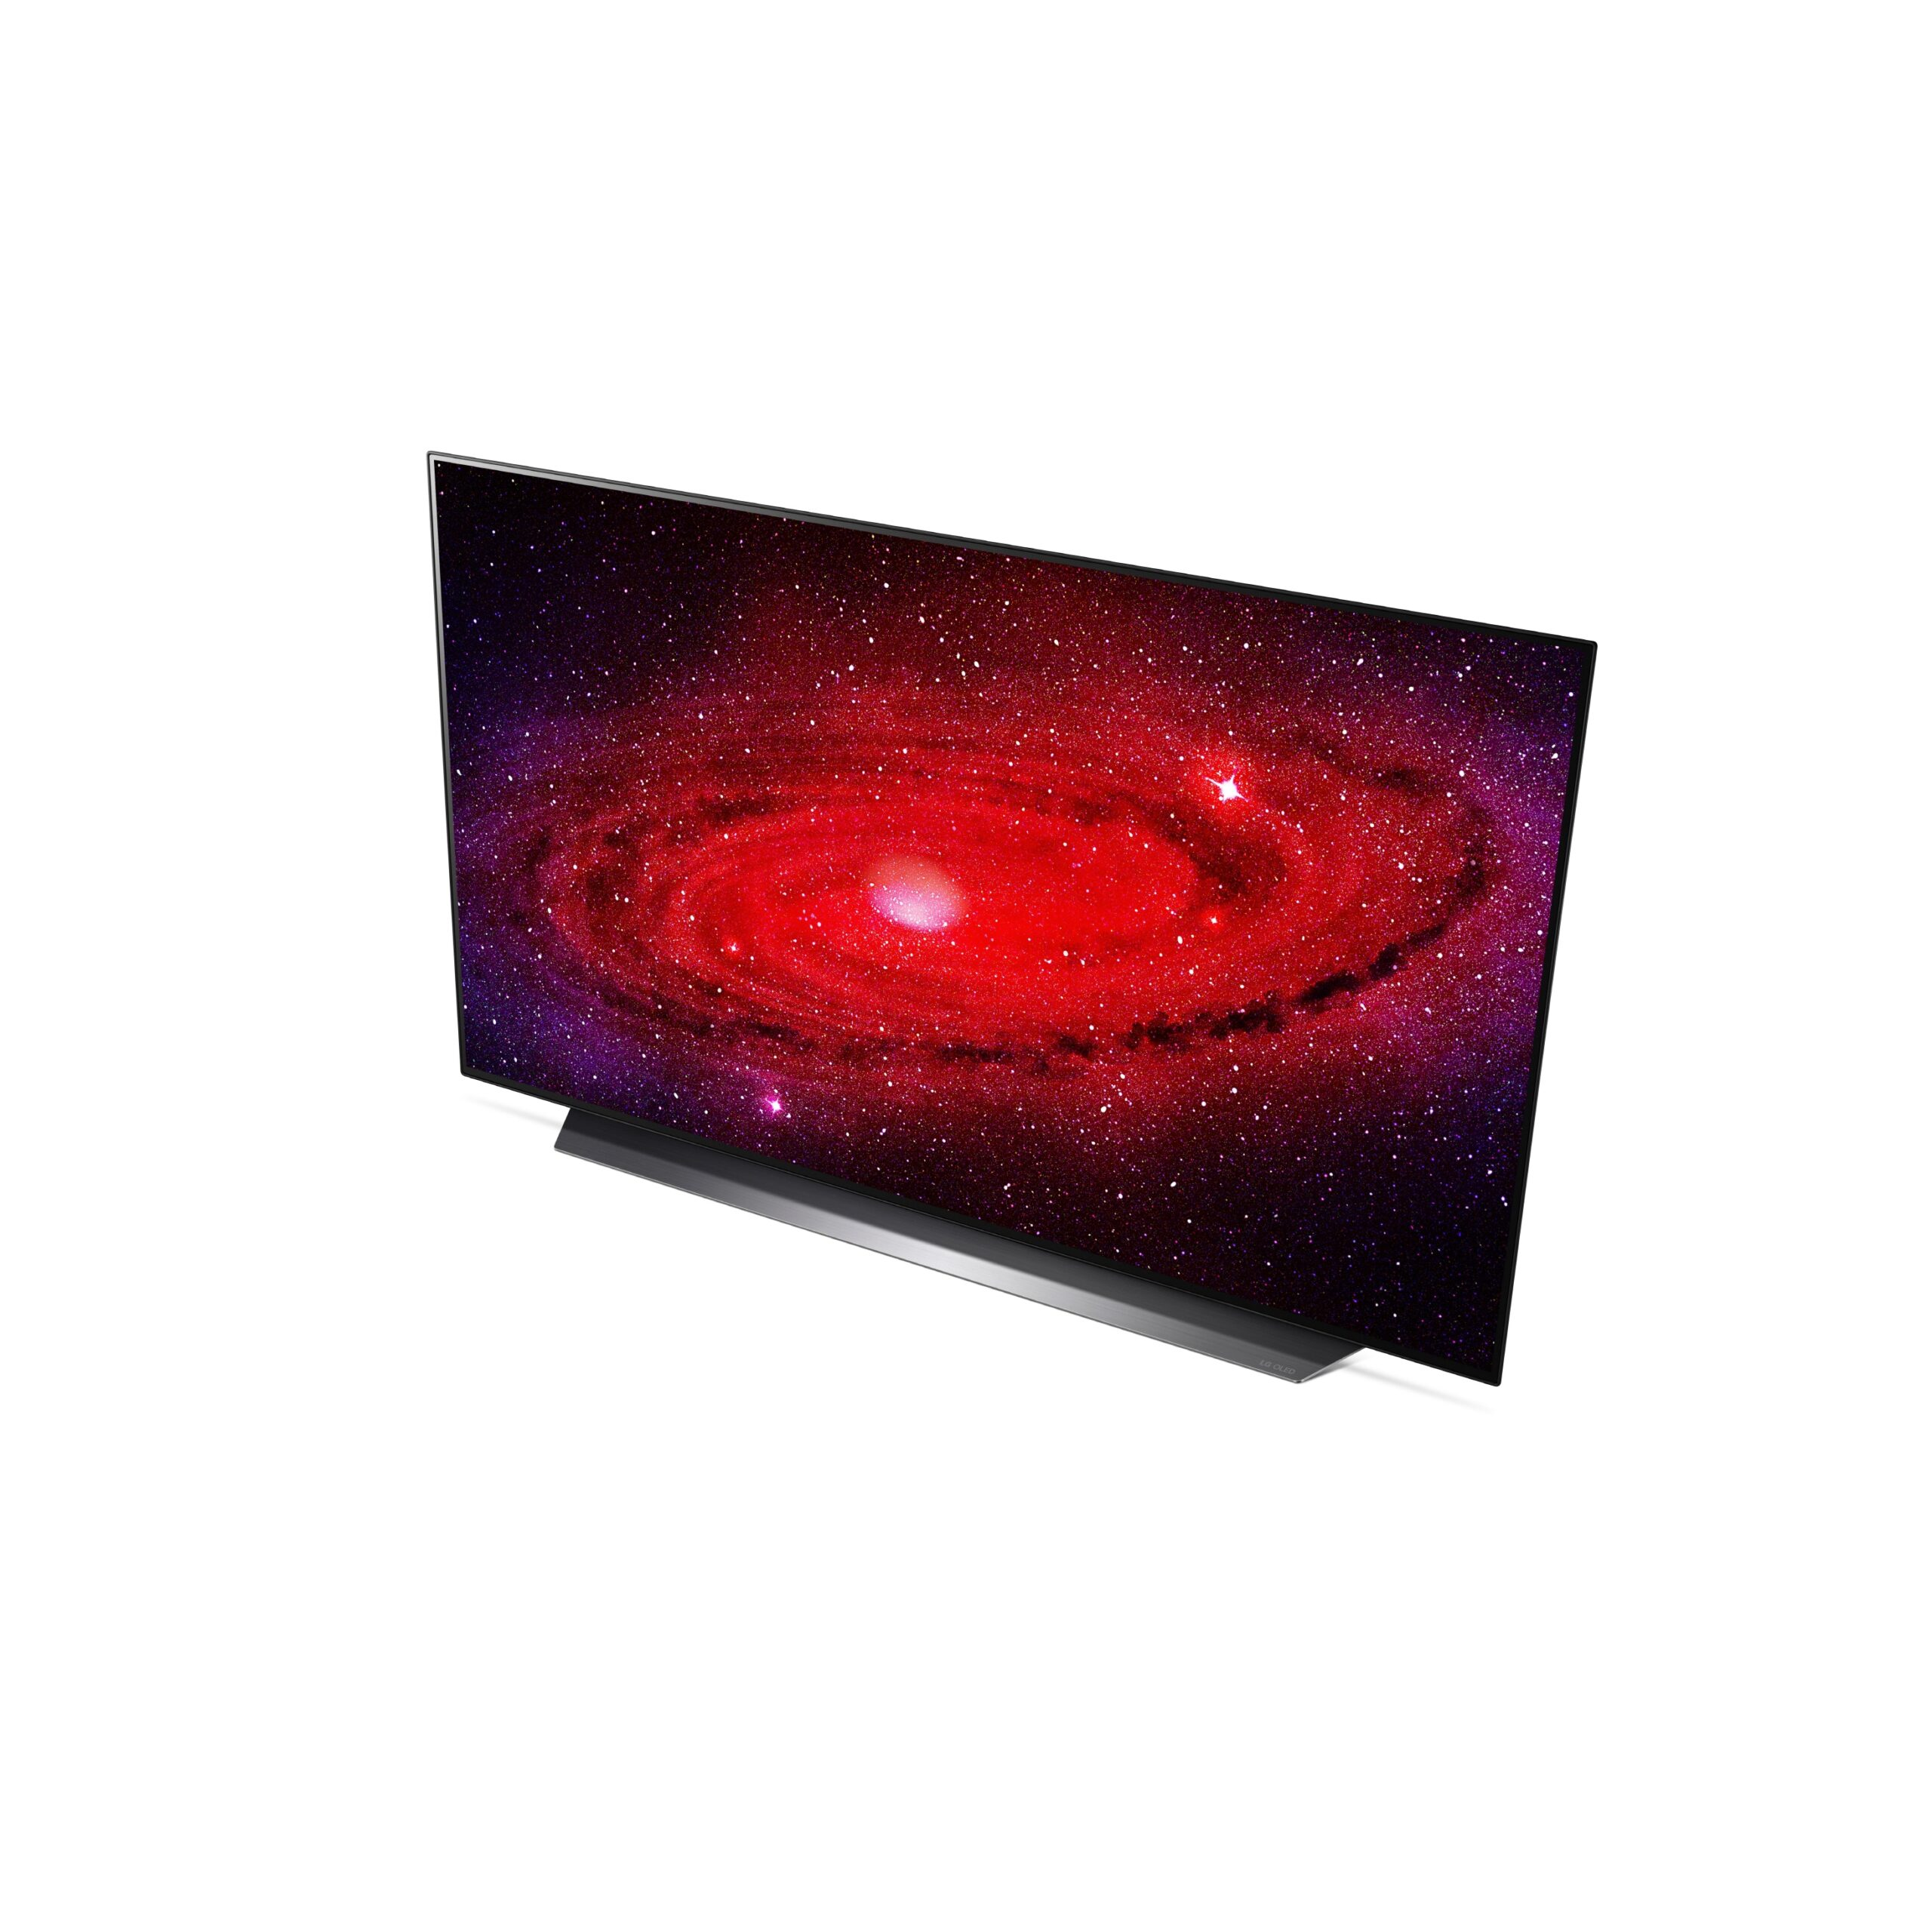 Right side view of LG's 48-inch OLED TV displaying a galaxy in extreme detail with powerful reds and purples